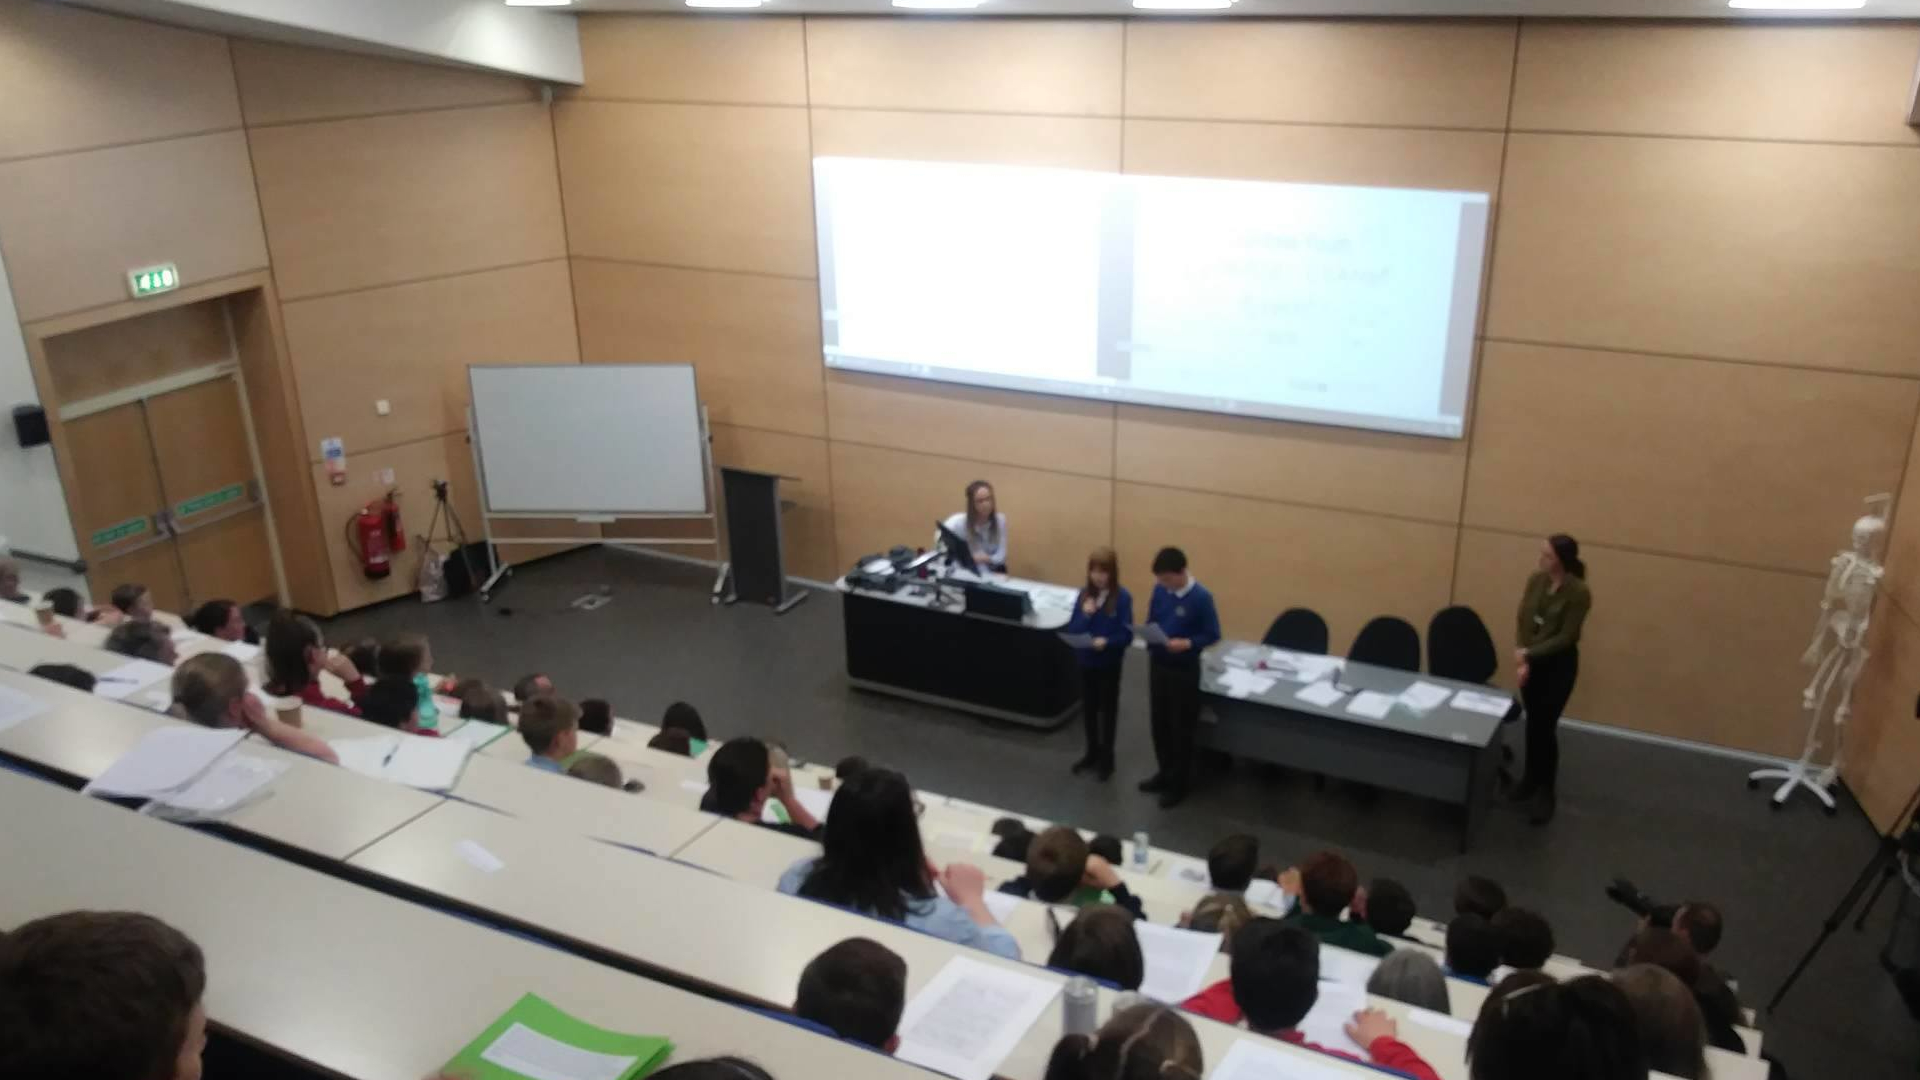 Young people in a lecture theatre listening as two students give a presentation on their fears about climate change, at Cumbria's first youth climate summit in Carlisle in April 2019